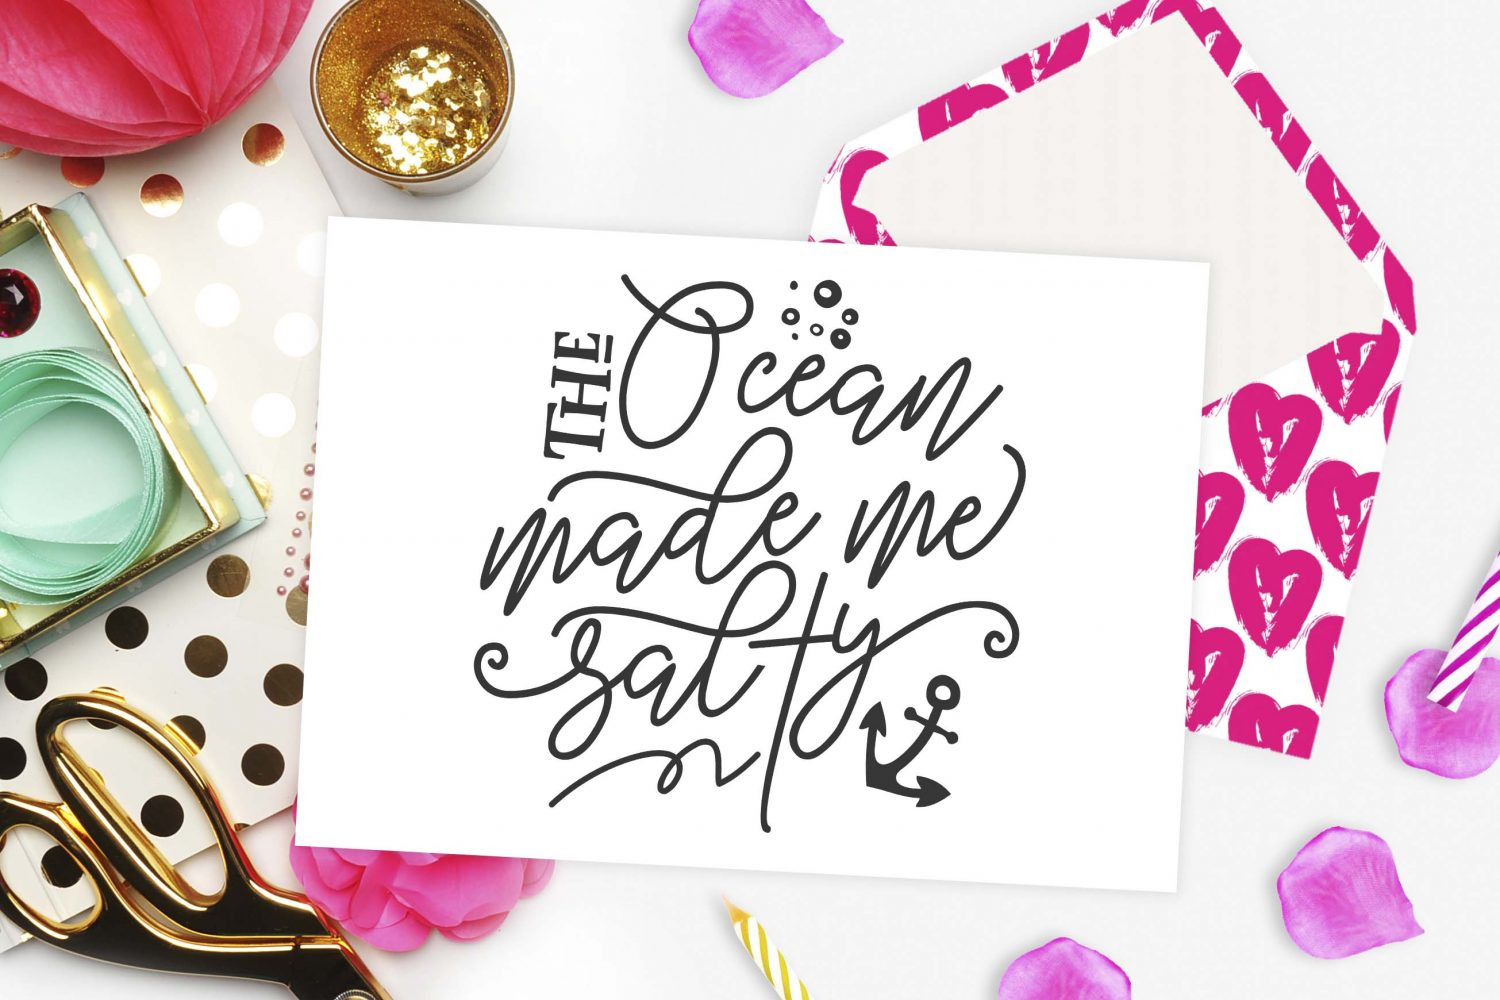 The Ocean Made Me Salty Svg Dxf Png Eps ⋆ Theblackcatprints